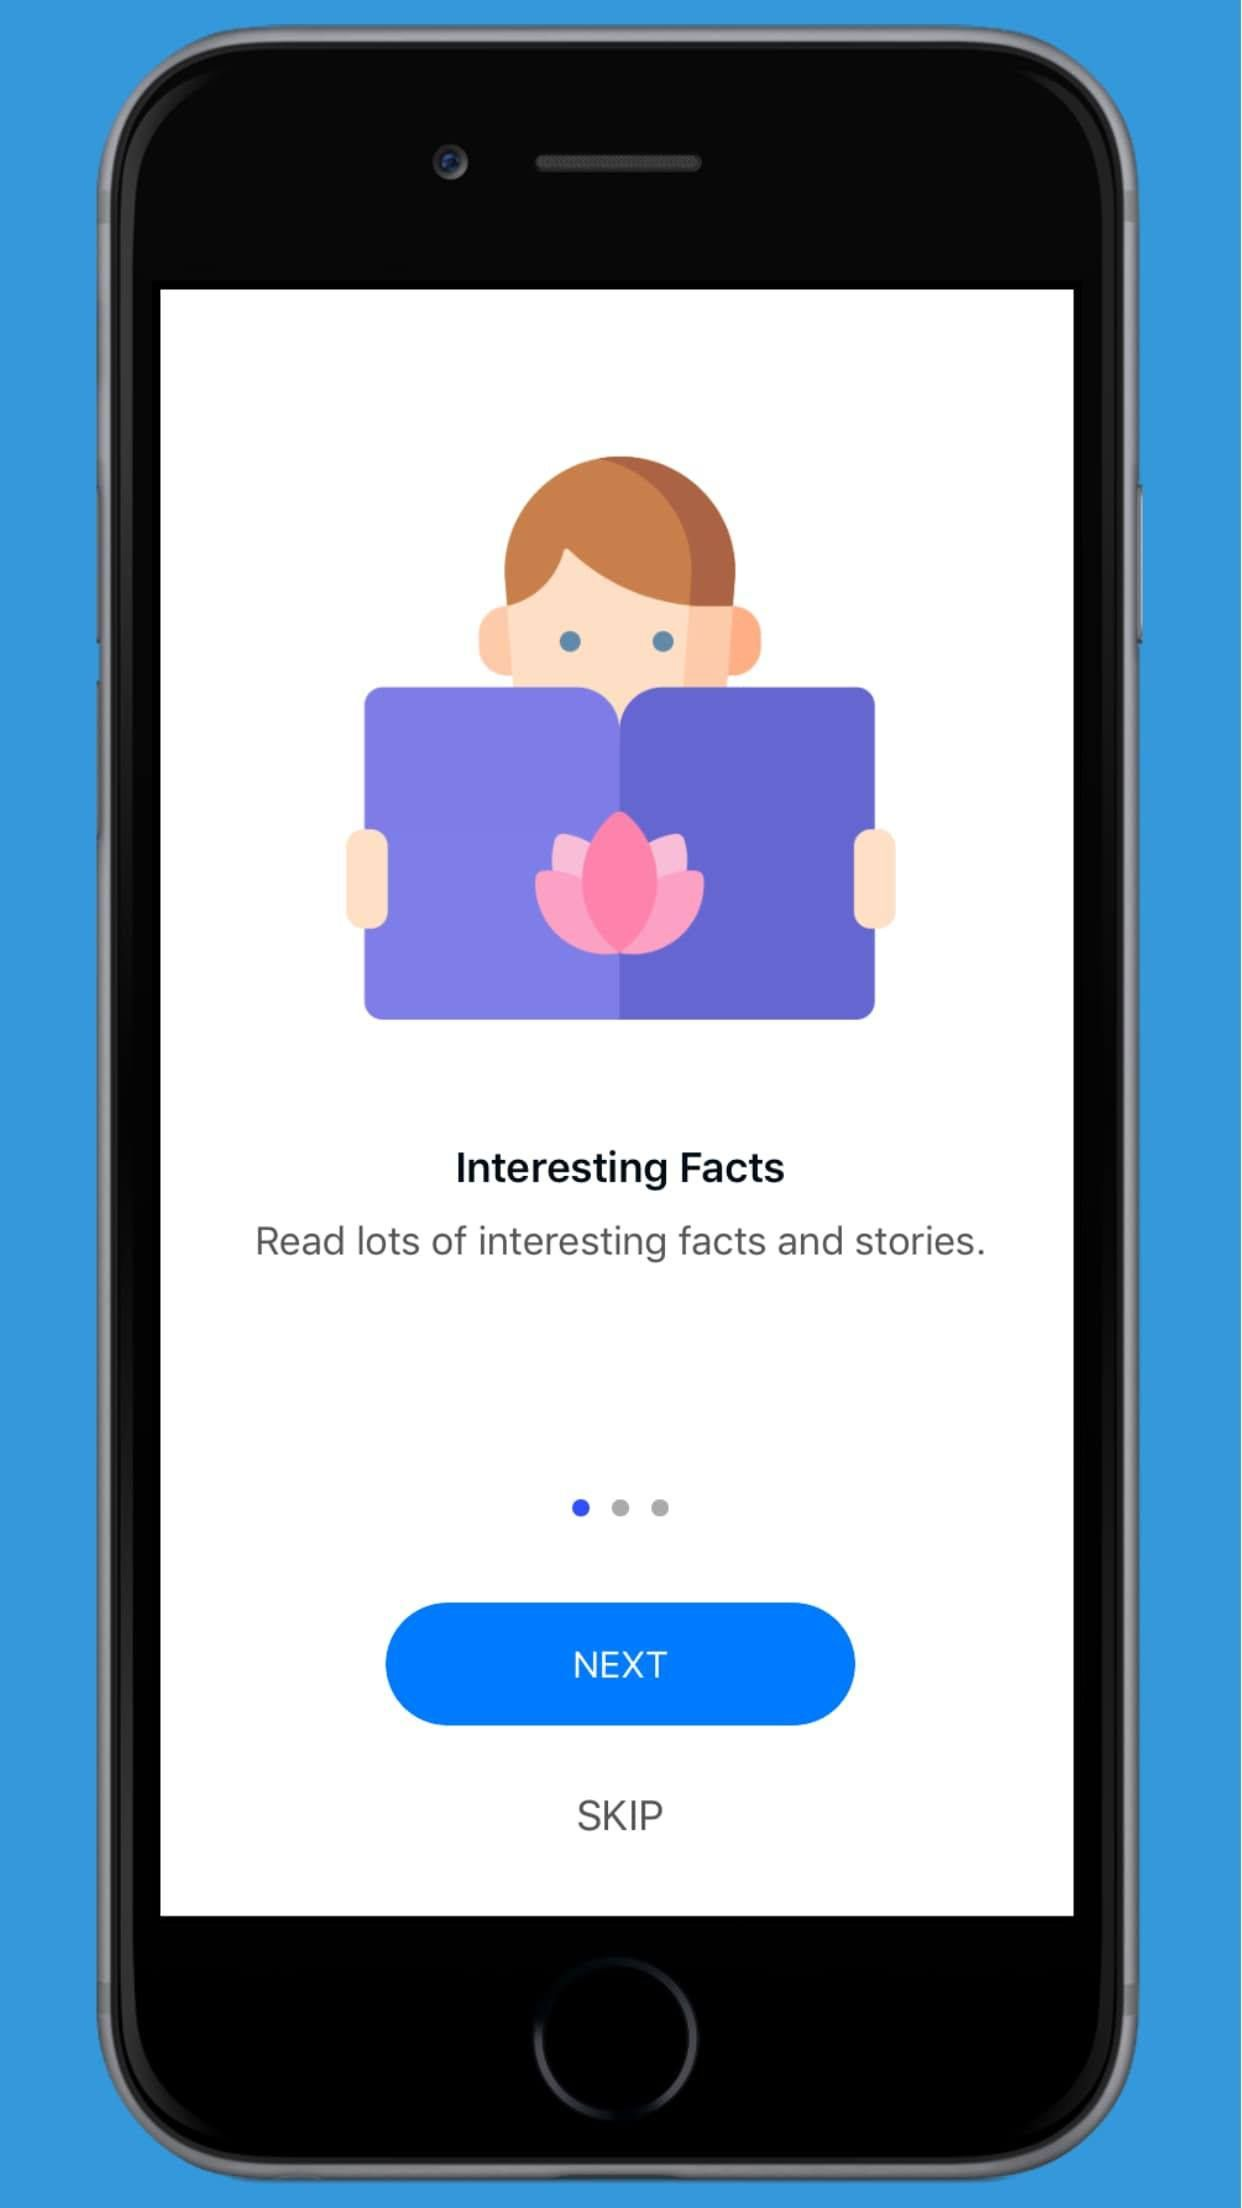 Facts World - iOS Facts and Notes Application Screenshot 3